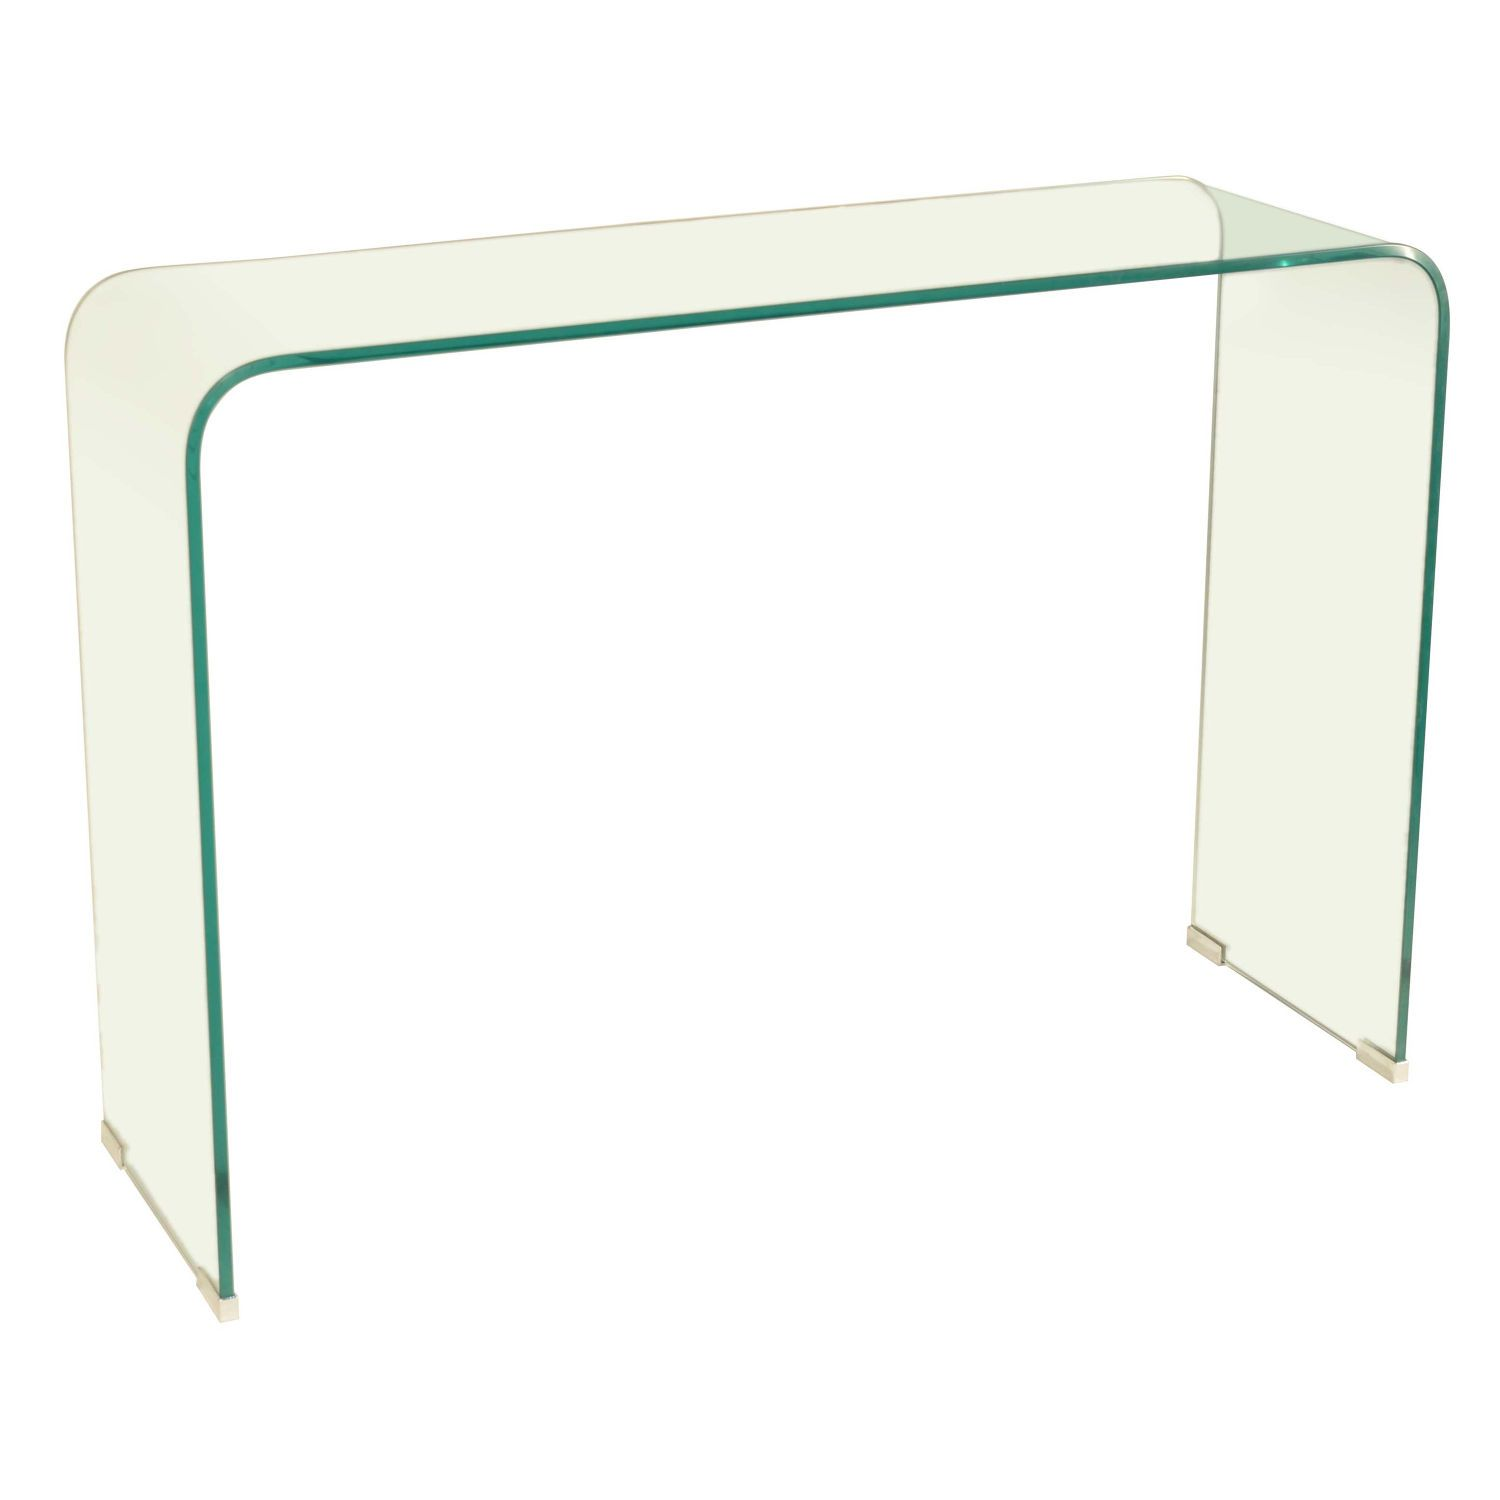 Azurro glass console table next day delivery azurro glass azurro glass console table next day delivery azurro glass console table from worldstores everything geotapseo Images